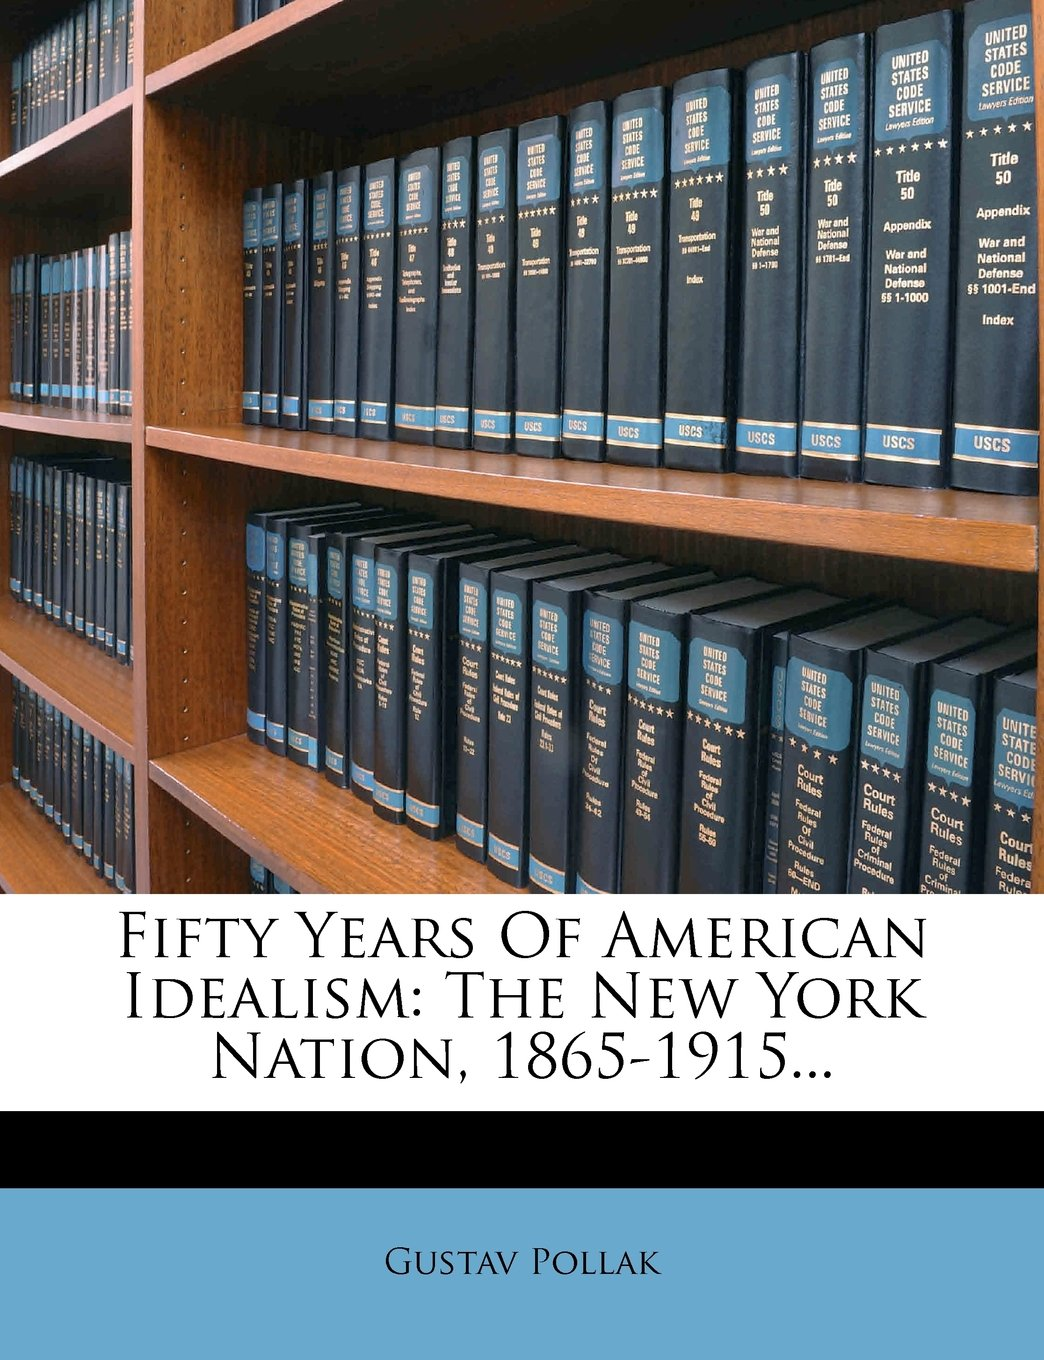 Download Fifty Years Of American Idealism: The New York Nation, 1865-1915... ebook